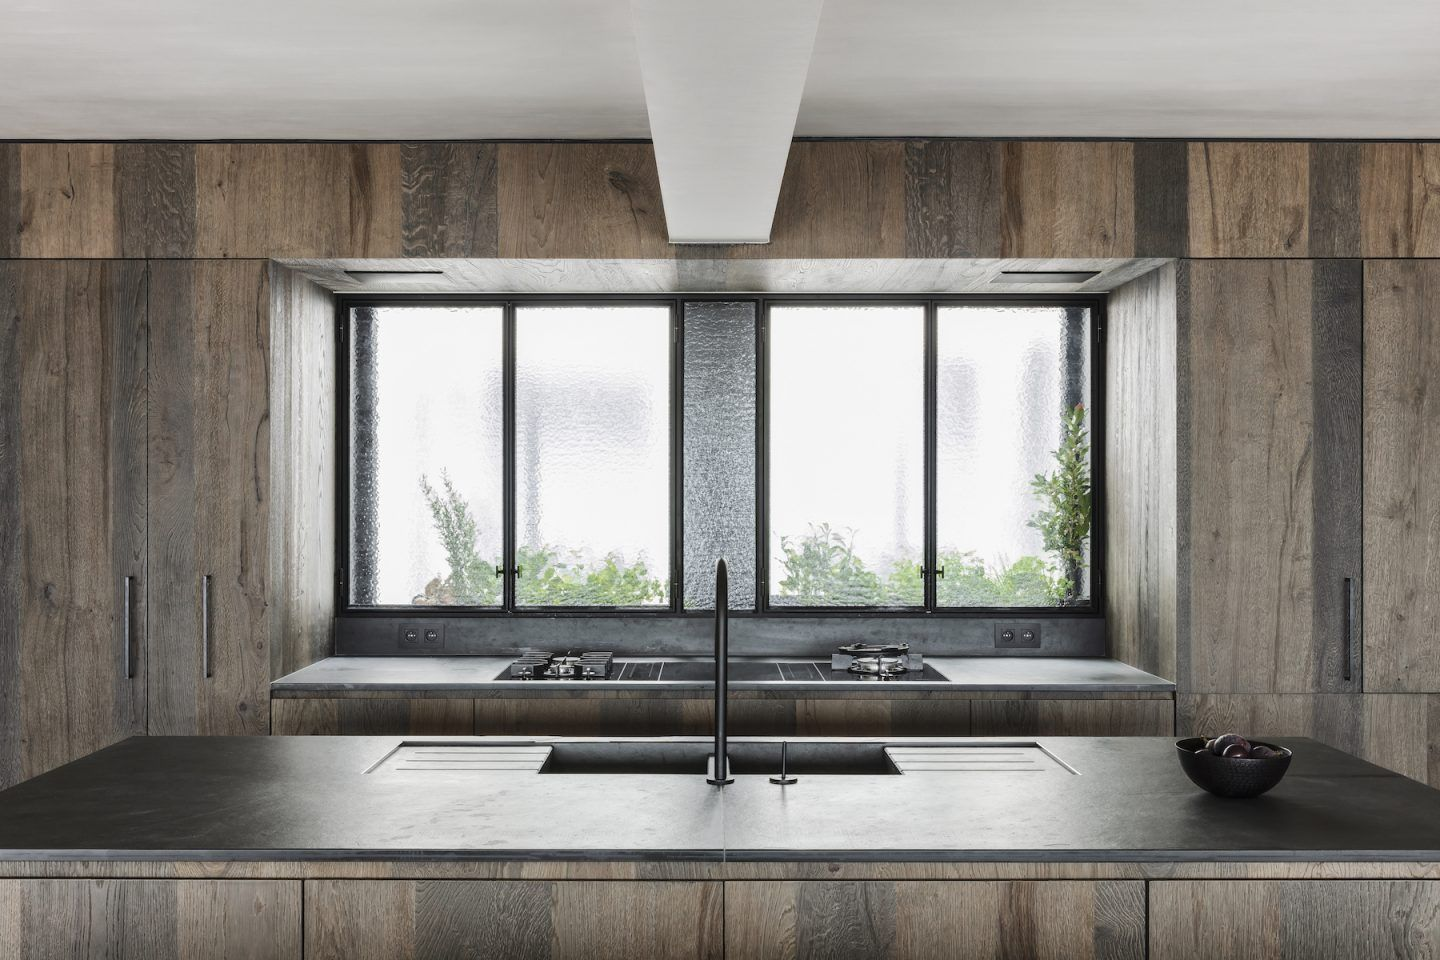 IGNANT-Architecture-Arjaan-De-Feyter-Penthouse-Zoute-05